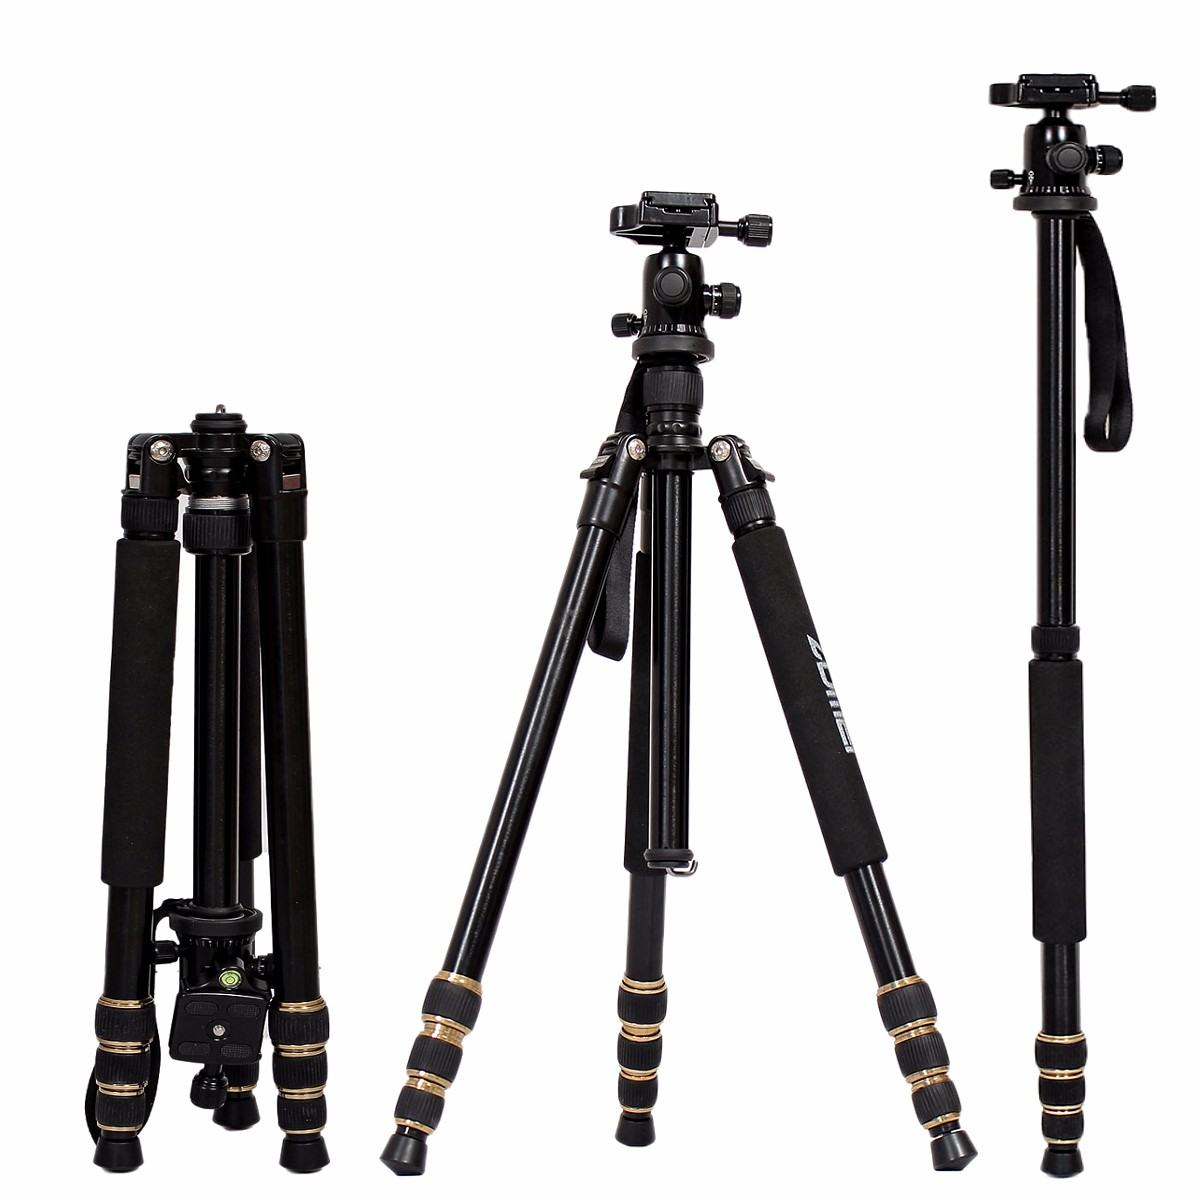 ZOMEI lightweight Portable Q666 Professional Travel Camera Tripod Monopod aluminum Ball Head compact for digital SLR DSLR camera zomei q666 professional magnesium alloy digital camera traveling tripod monopod for digital slr dslr camera